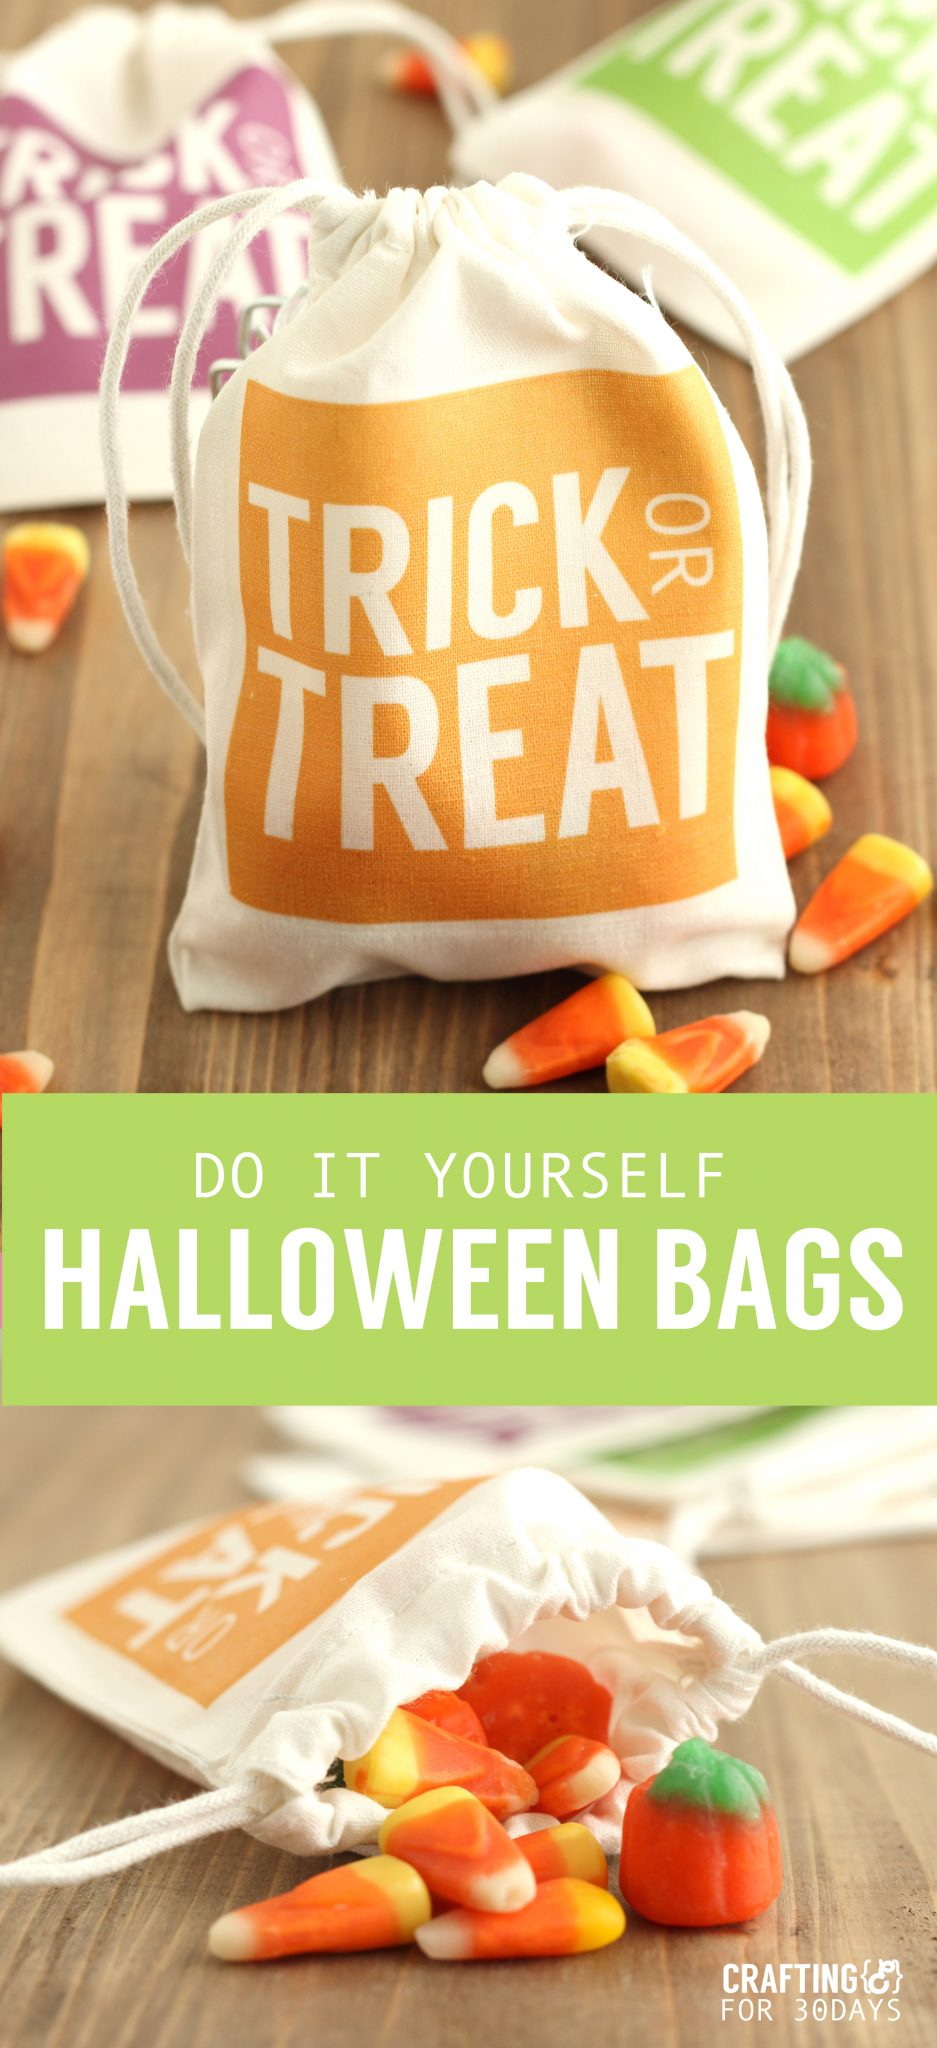 HALLOWEENBAGS_6